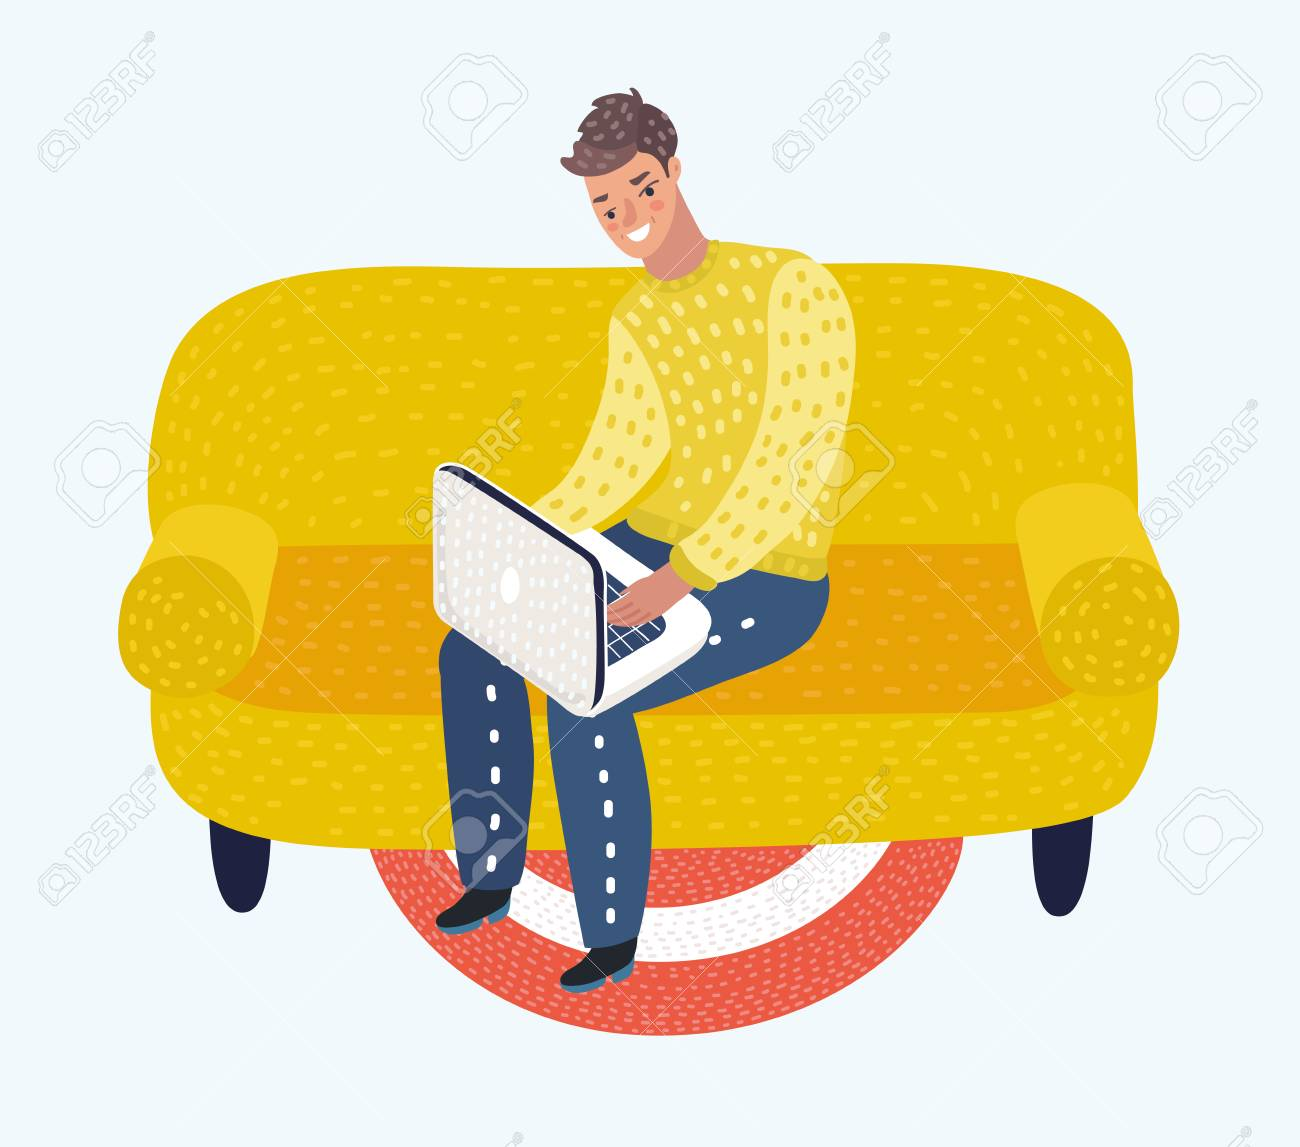 Vector Cartoon Illustration Of Young Man Sitting On The Sofa Stock